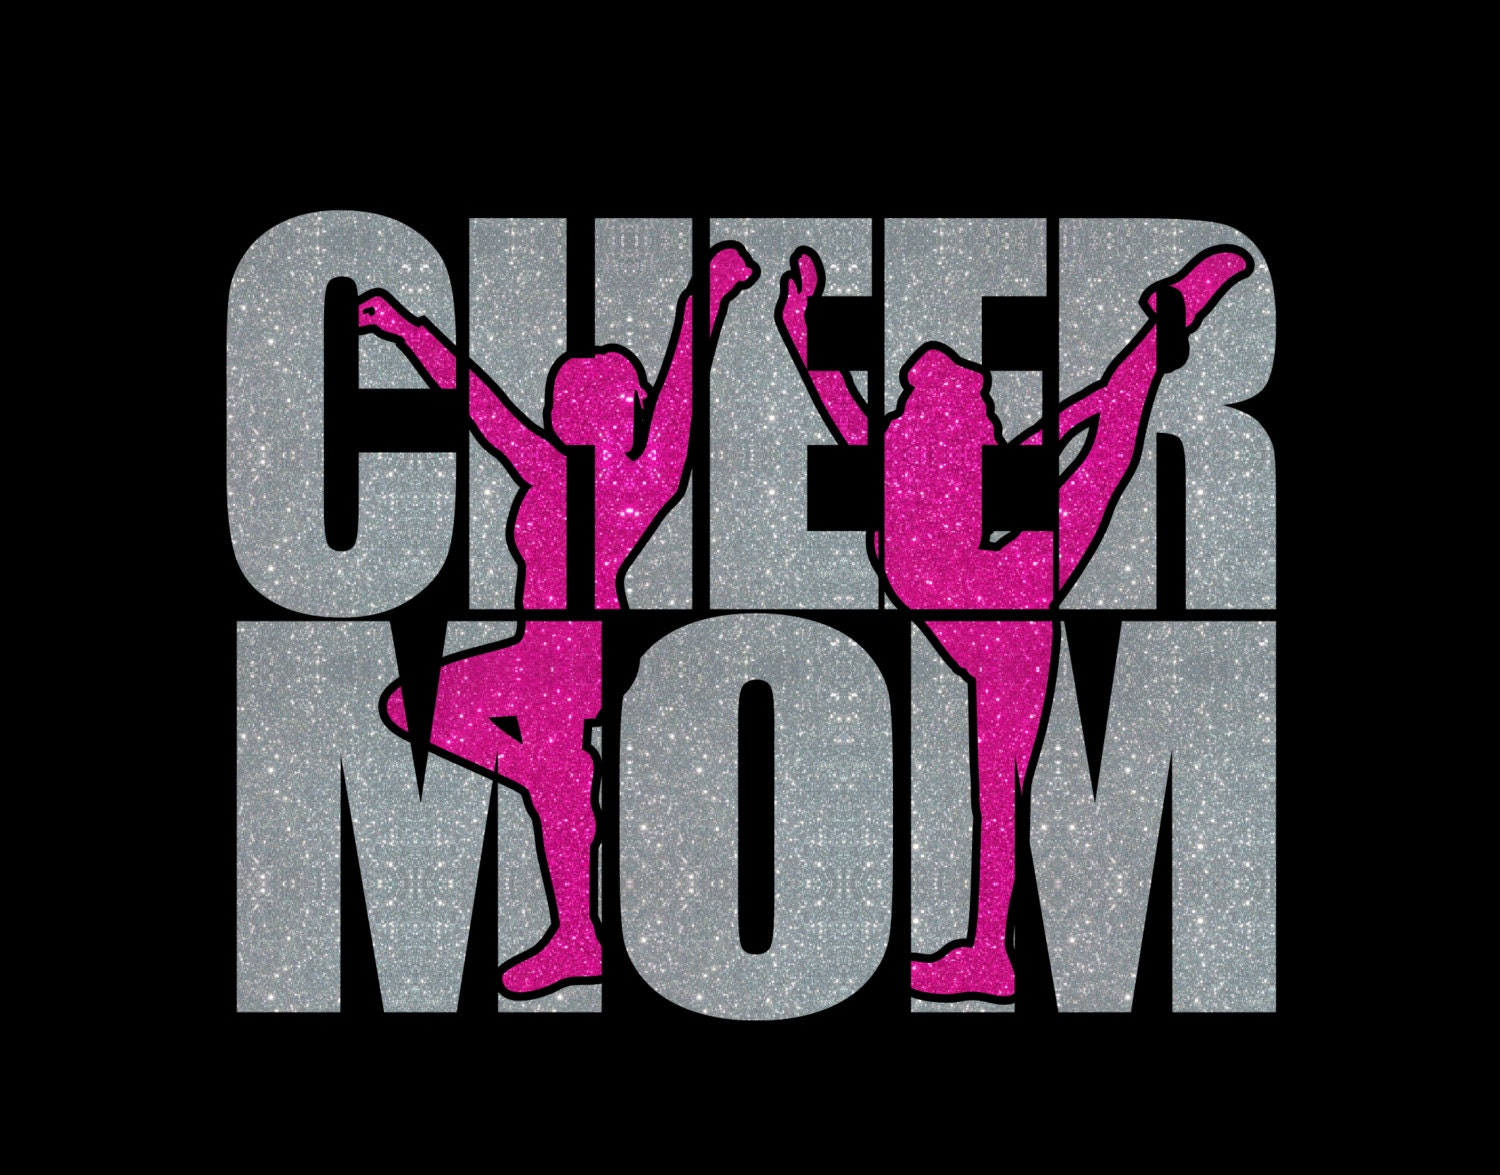 custom cheer mom glitter vinyl heat transfer decal spirit wear from mycreativeoutlettime on etsy